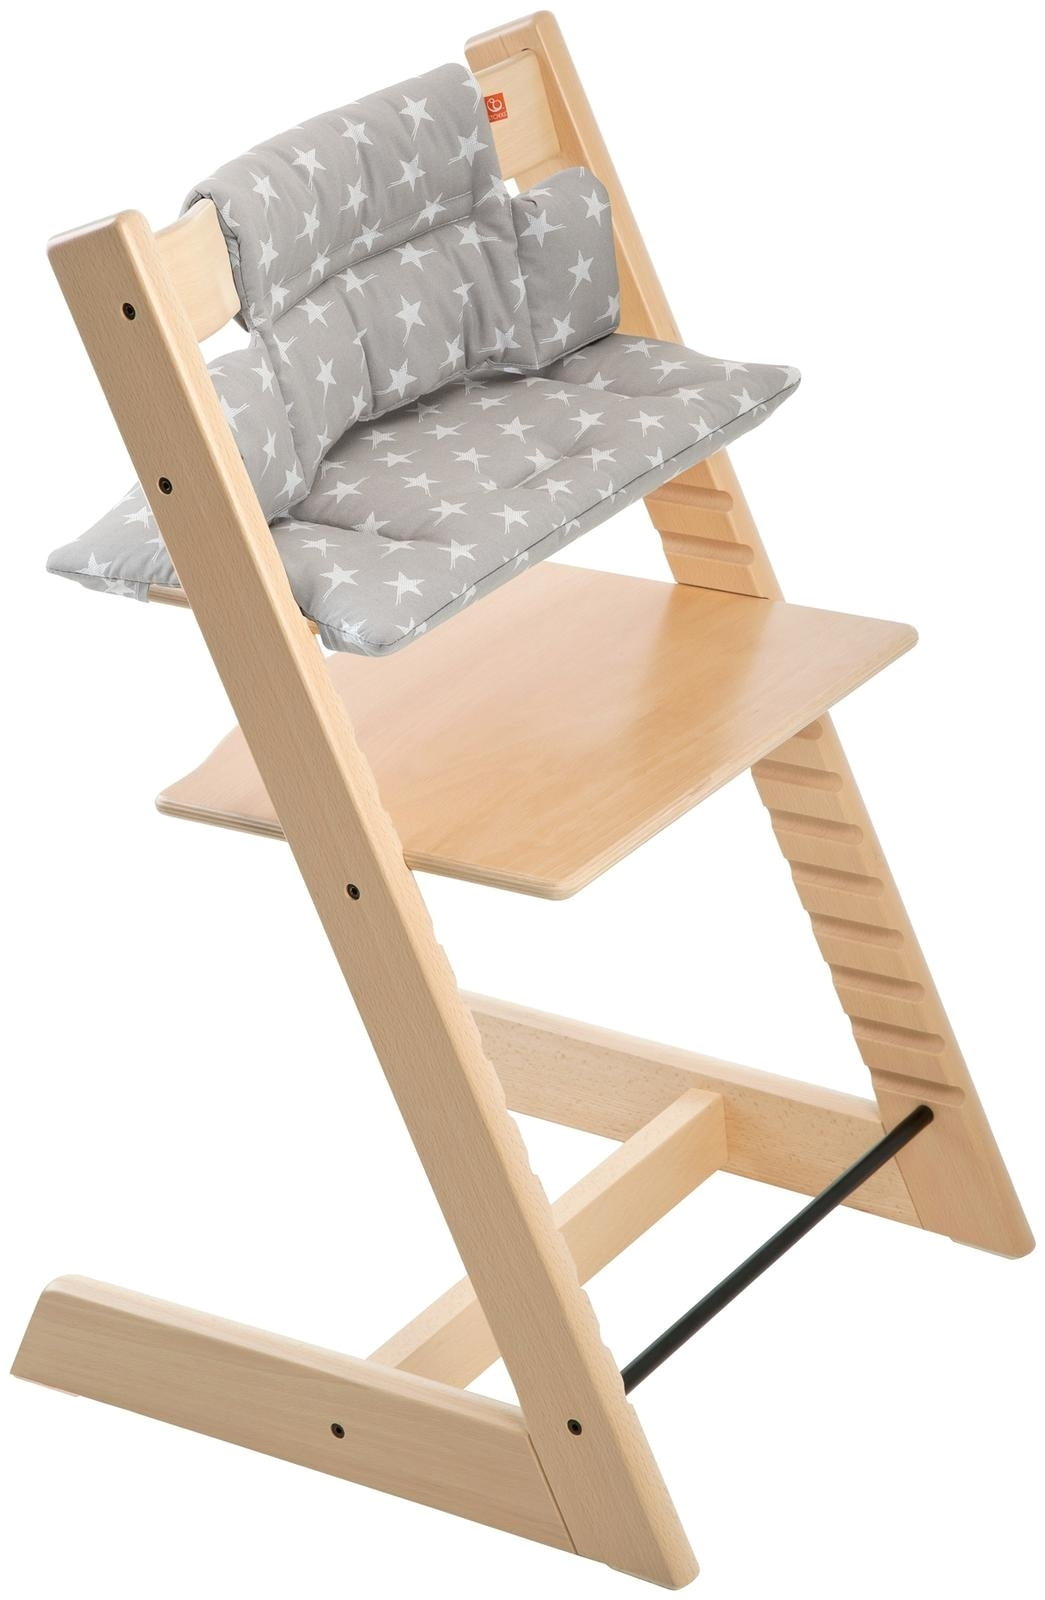 stokke tripp trapp cushion grey star chair not included